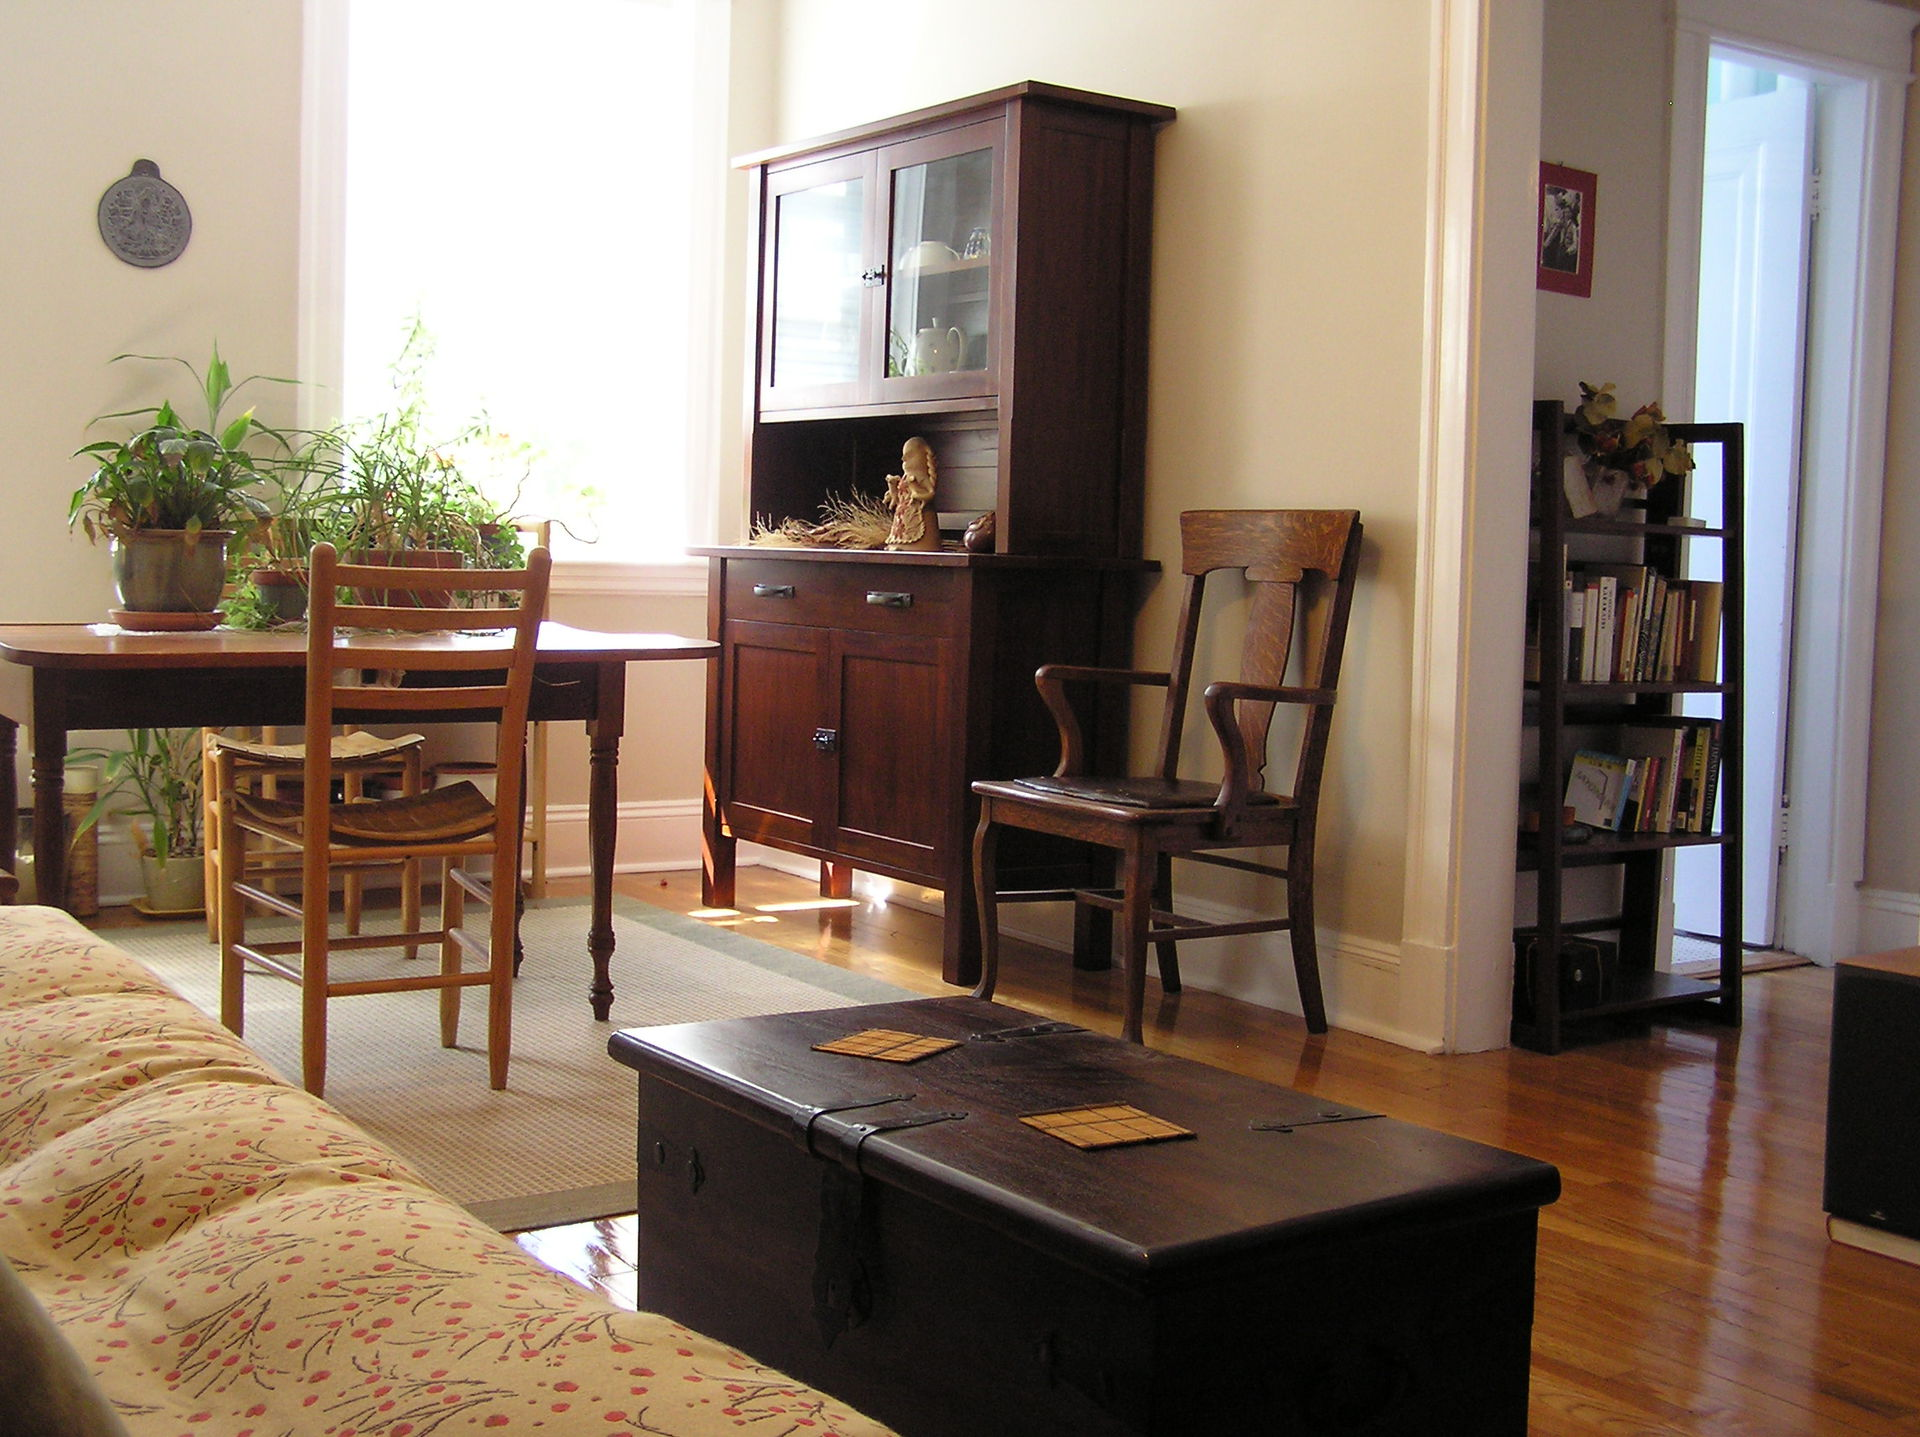 Sunny Apartment in Cambridge Between Harvard and MIT. - Boligbytte